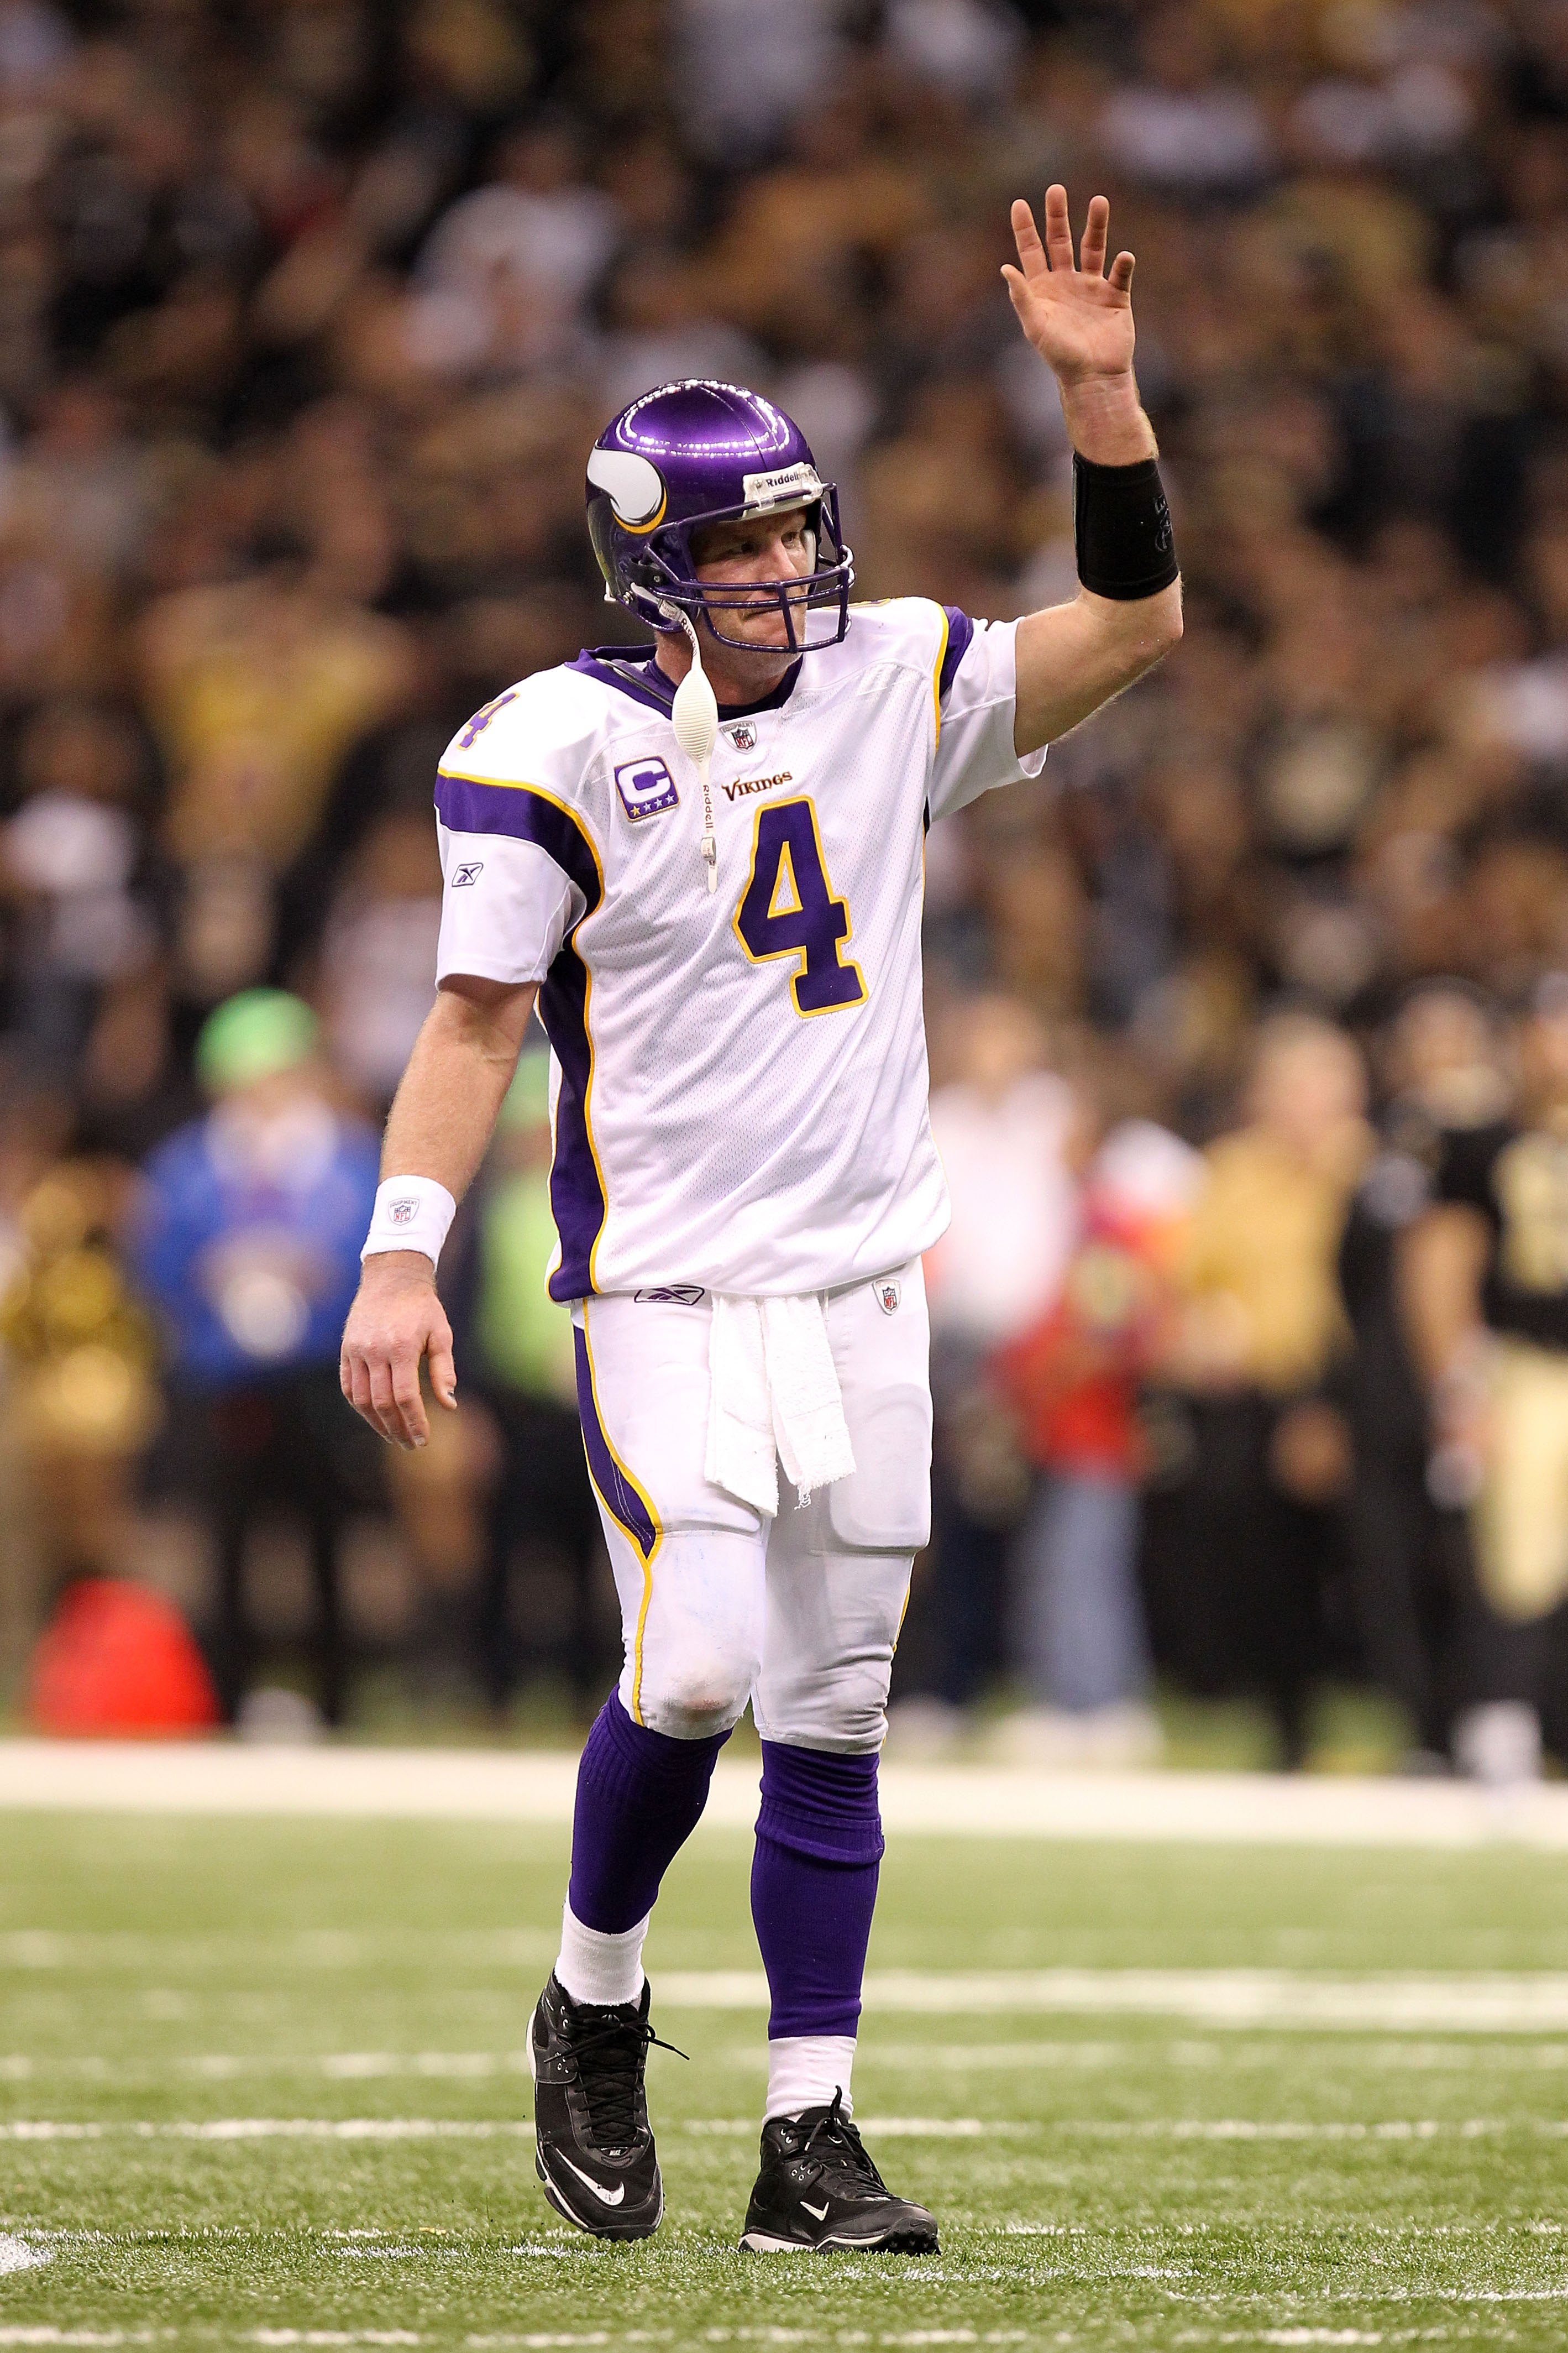 NEW ORLEANS - JANUARY 24:  Quarterback Brett Favre #4 of the Minnesota Vikings waves on the field against the New Orleans Saints during the NFC Championship Game at the Louisiana Superdome on January 24, 2010 in New Orleans, Louisiana. The Saints won 31-2